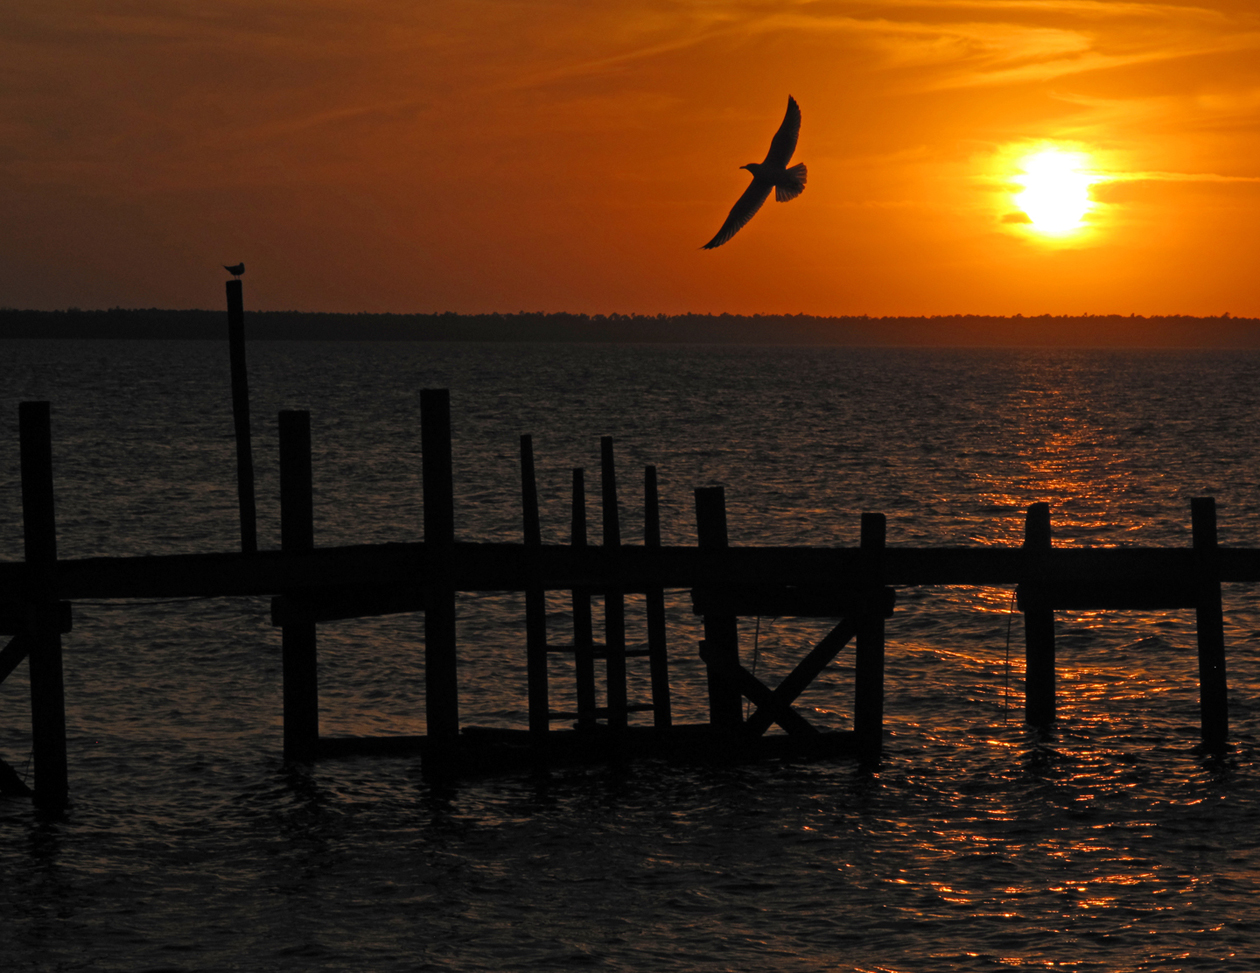 bahamas, abaco, green turtle cay, sunset, seagull